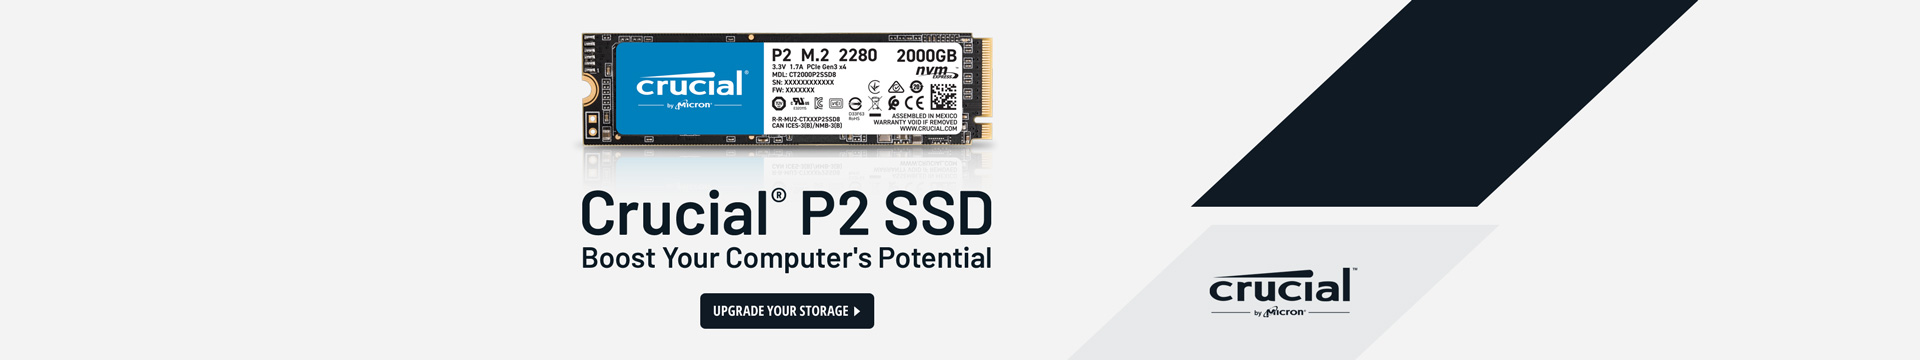 Crucial ® P2 SSD